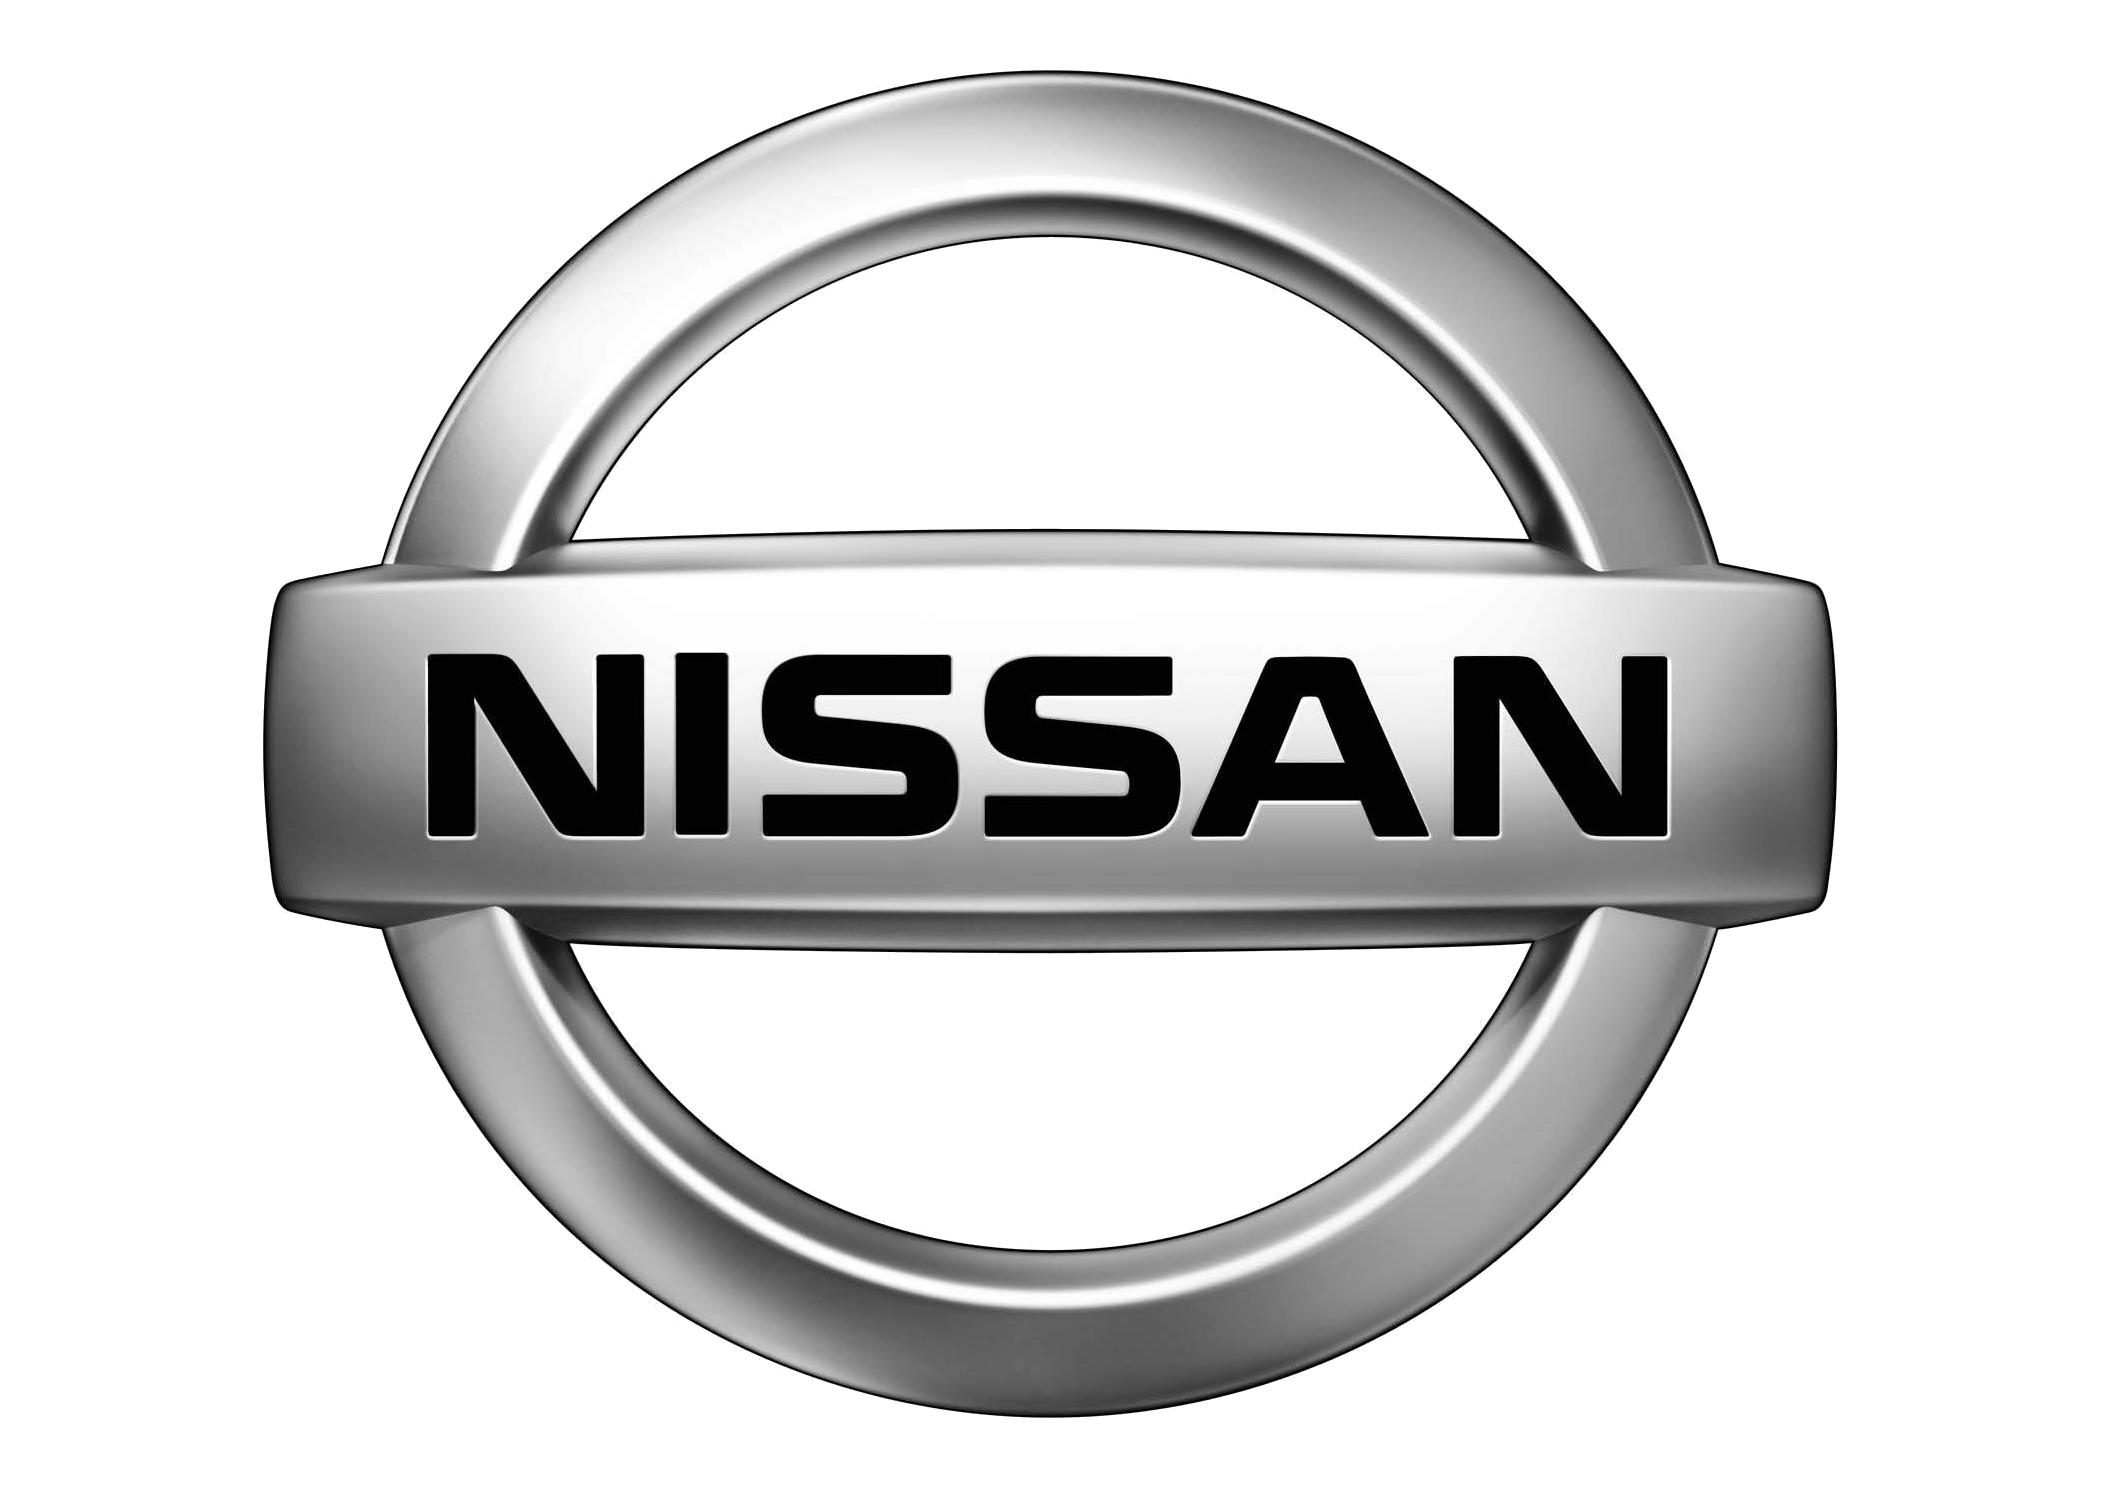 Nissan Auto Body and Collision Repair